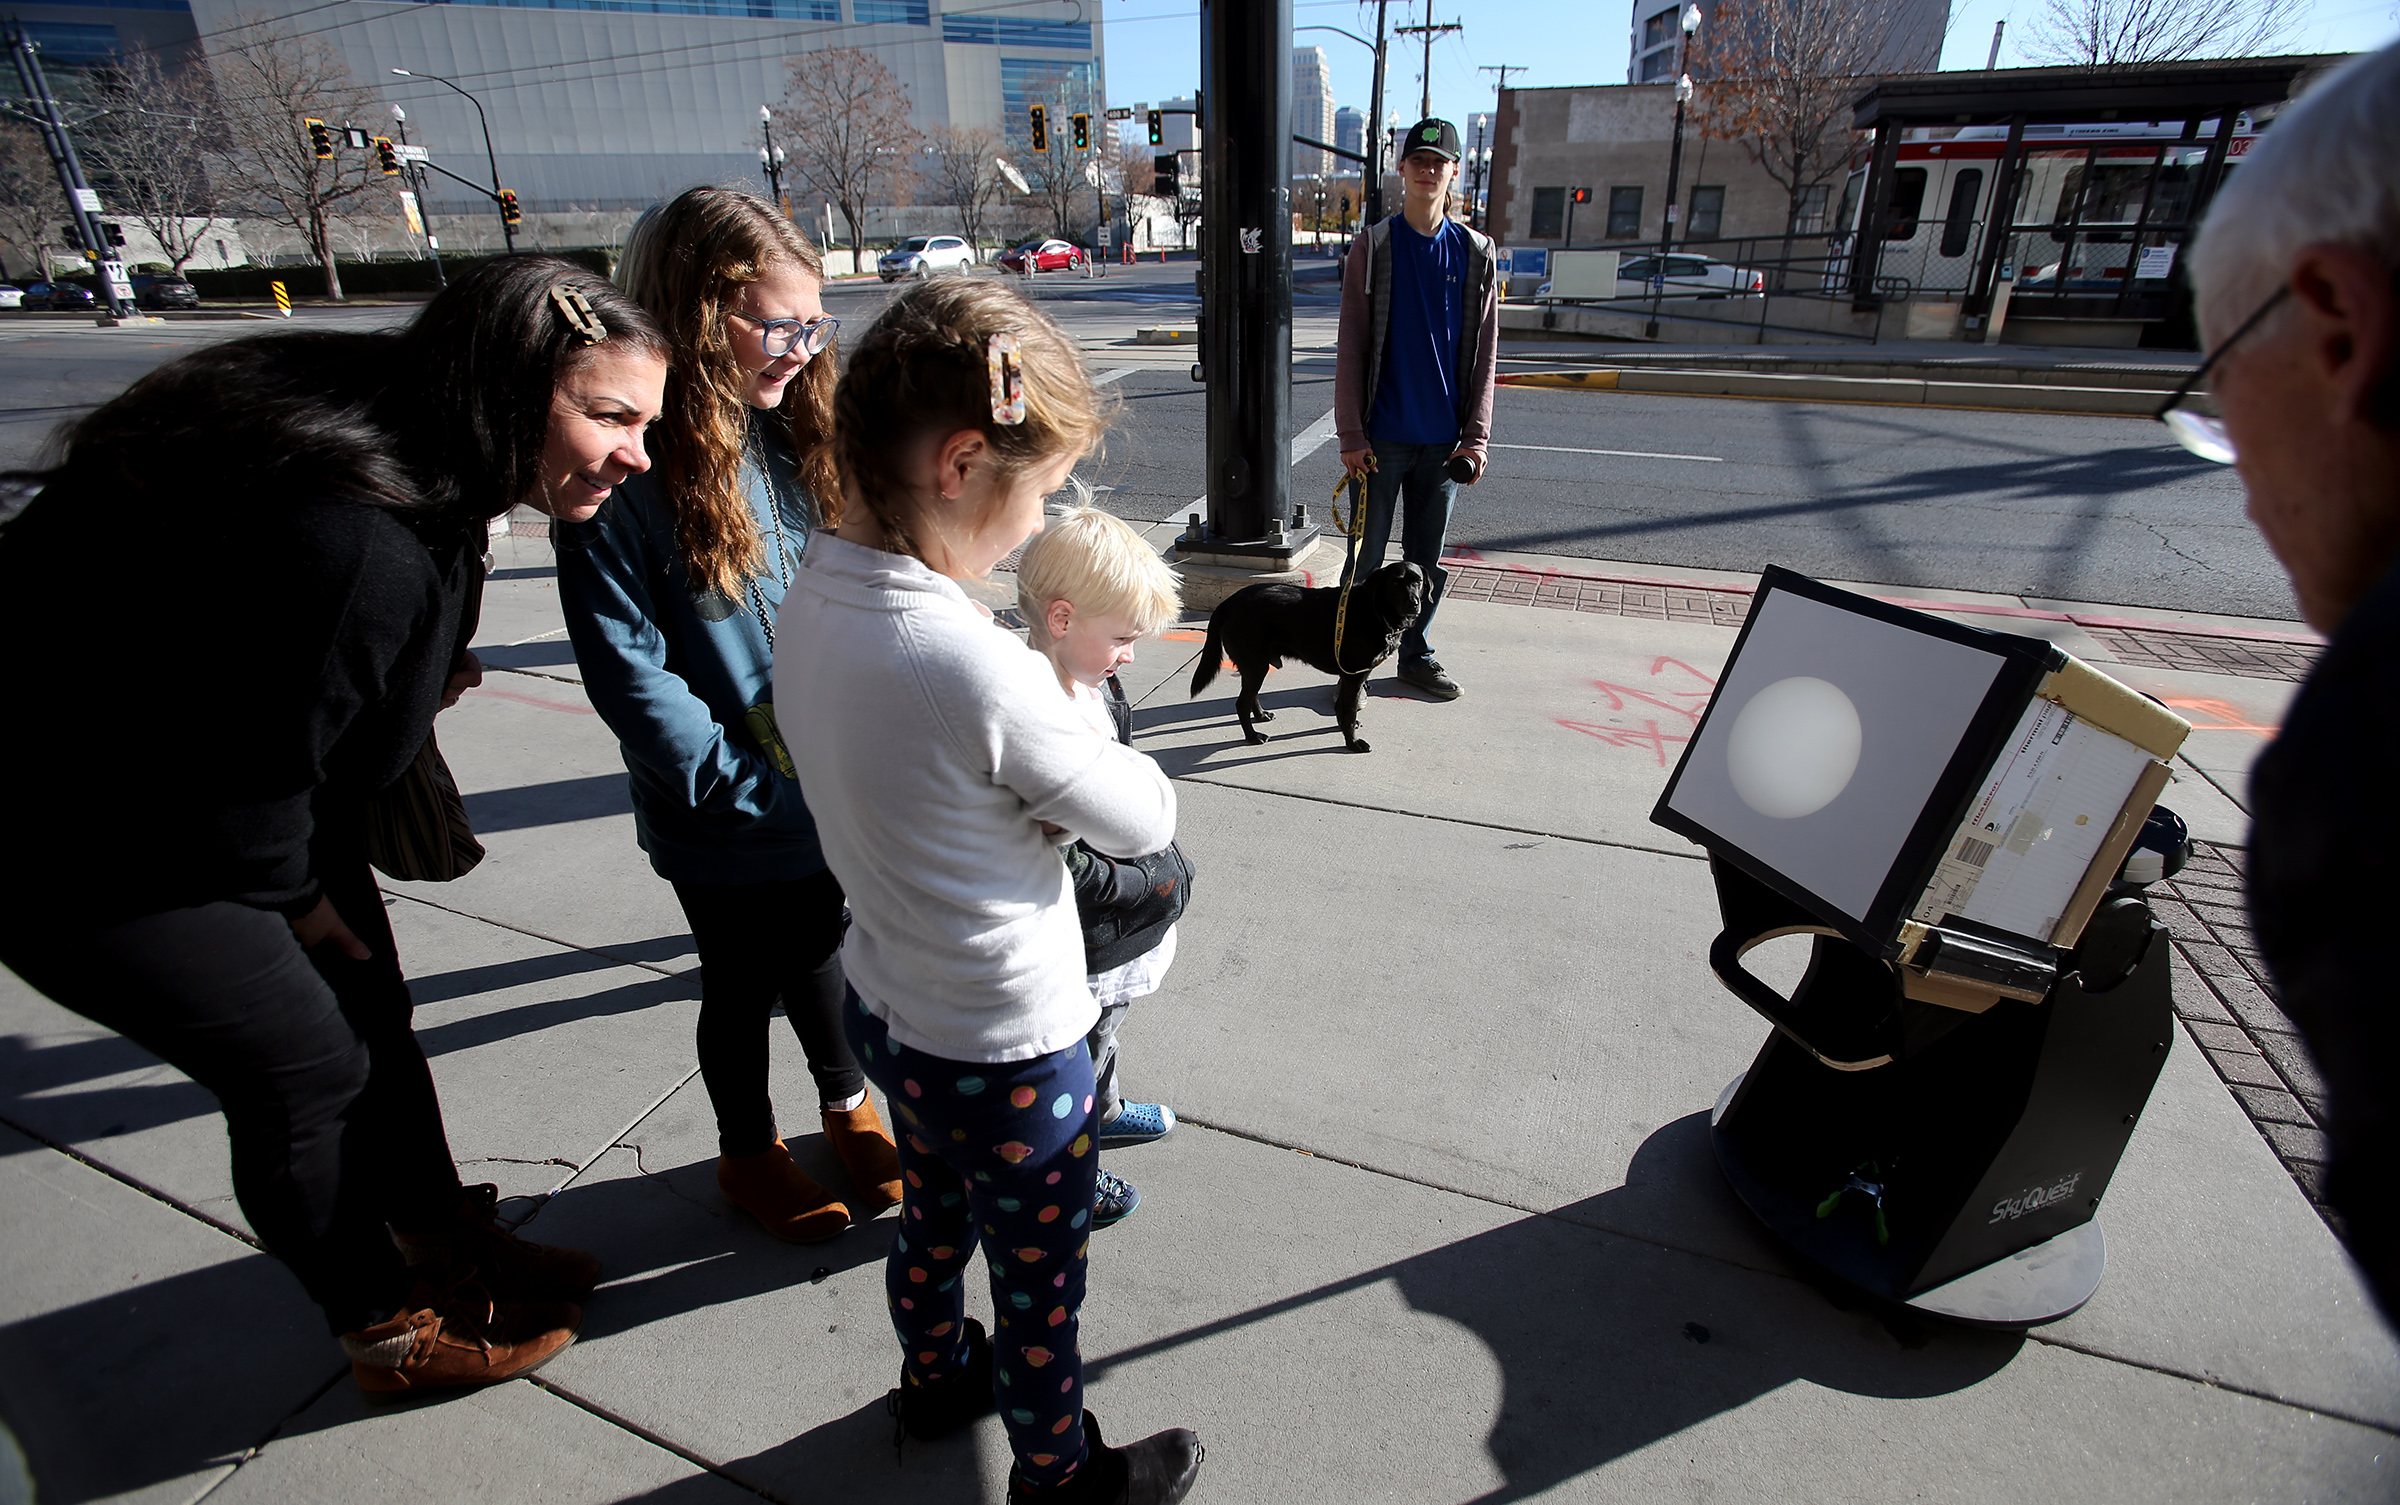 Shauntel Cheney and her children, Annabelle, Lou and Jess, watch as Mercury passes across the sun during a viewing event at the Clark Planetarium in Salt Lake City on Monday, Nov. 11, 2019.